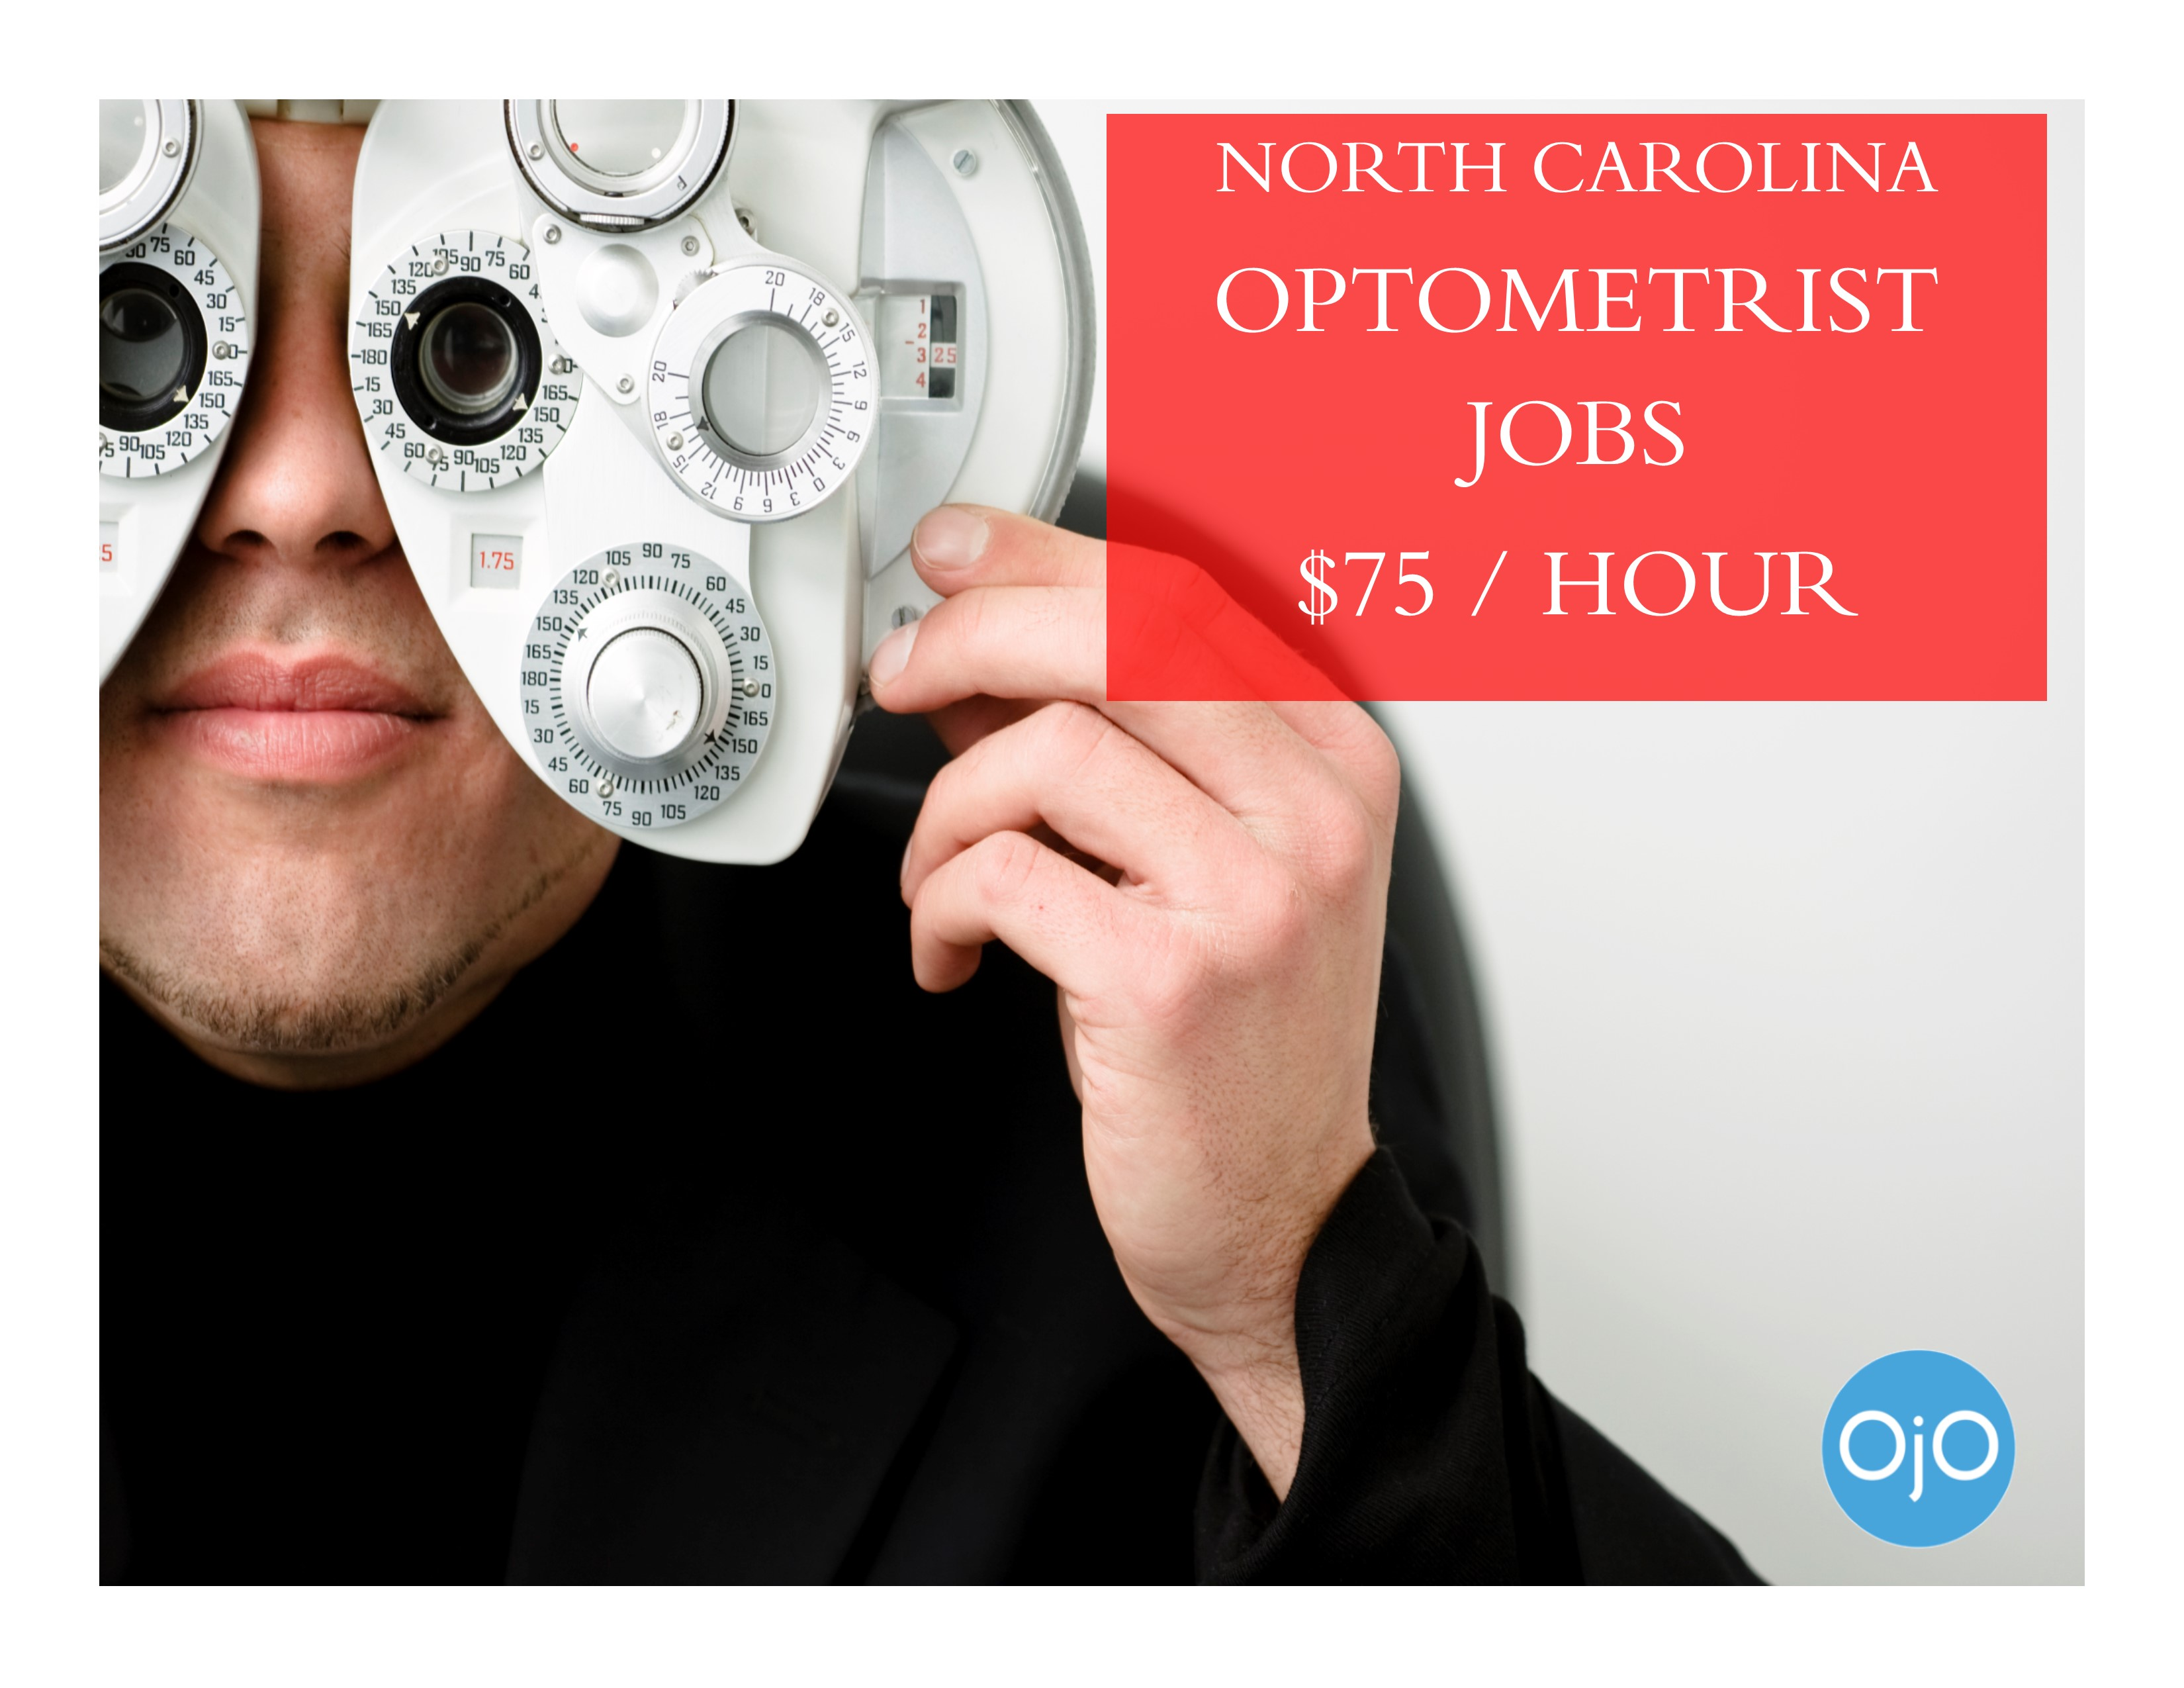 JOBS FOR OPTOMETRISTS IN NORTH CAROLINA OjO Ophthalmology jobs Online